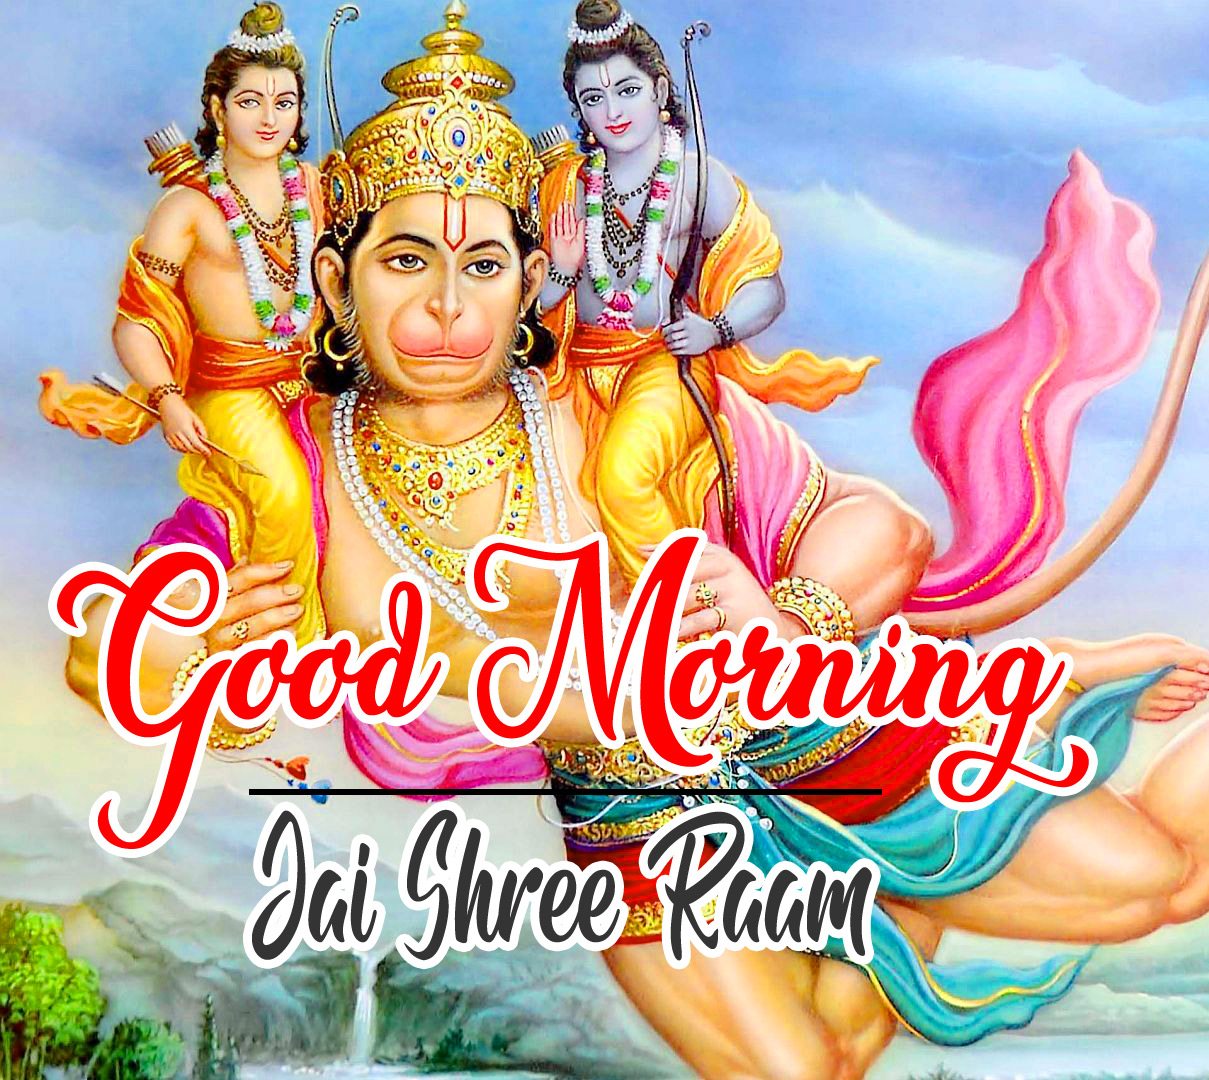 Lord Hanuman Ji good morning 9